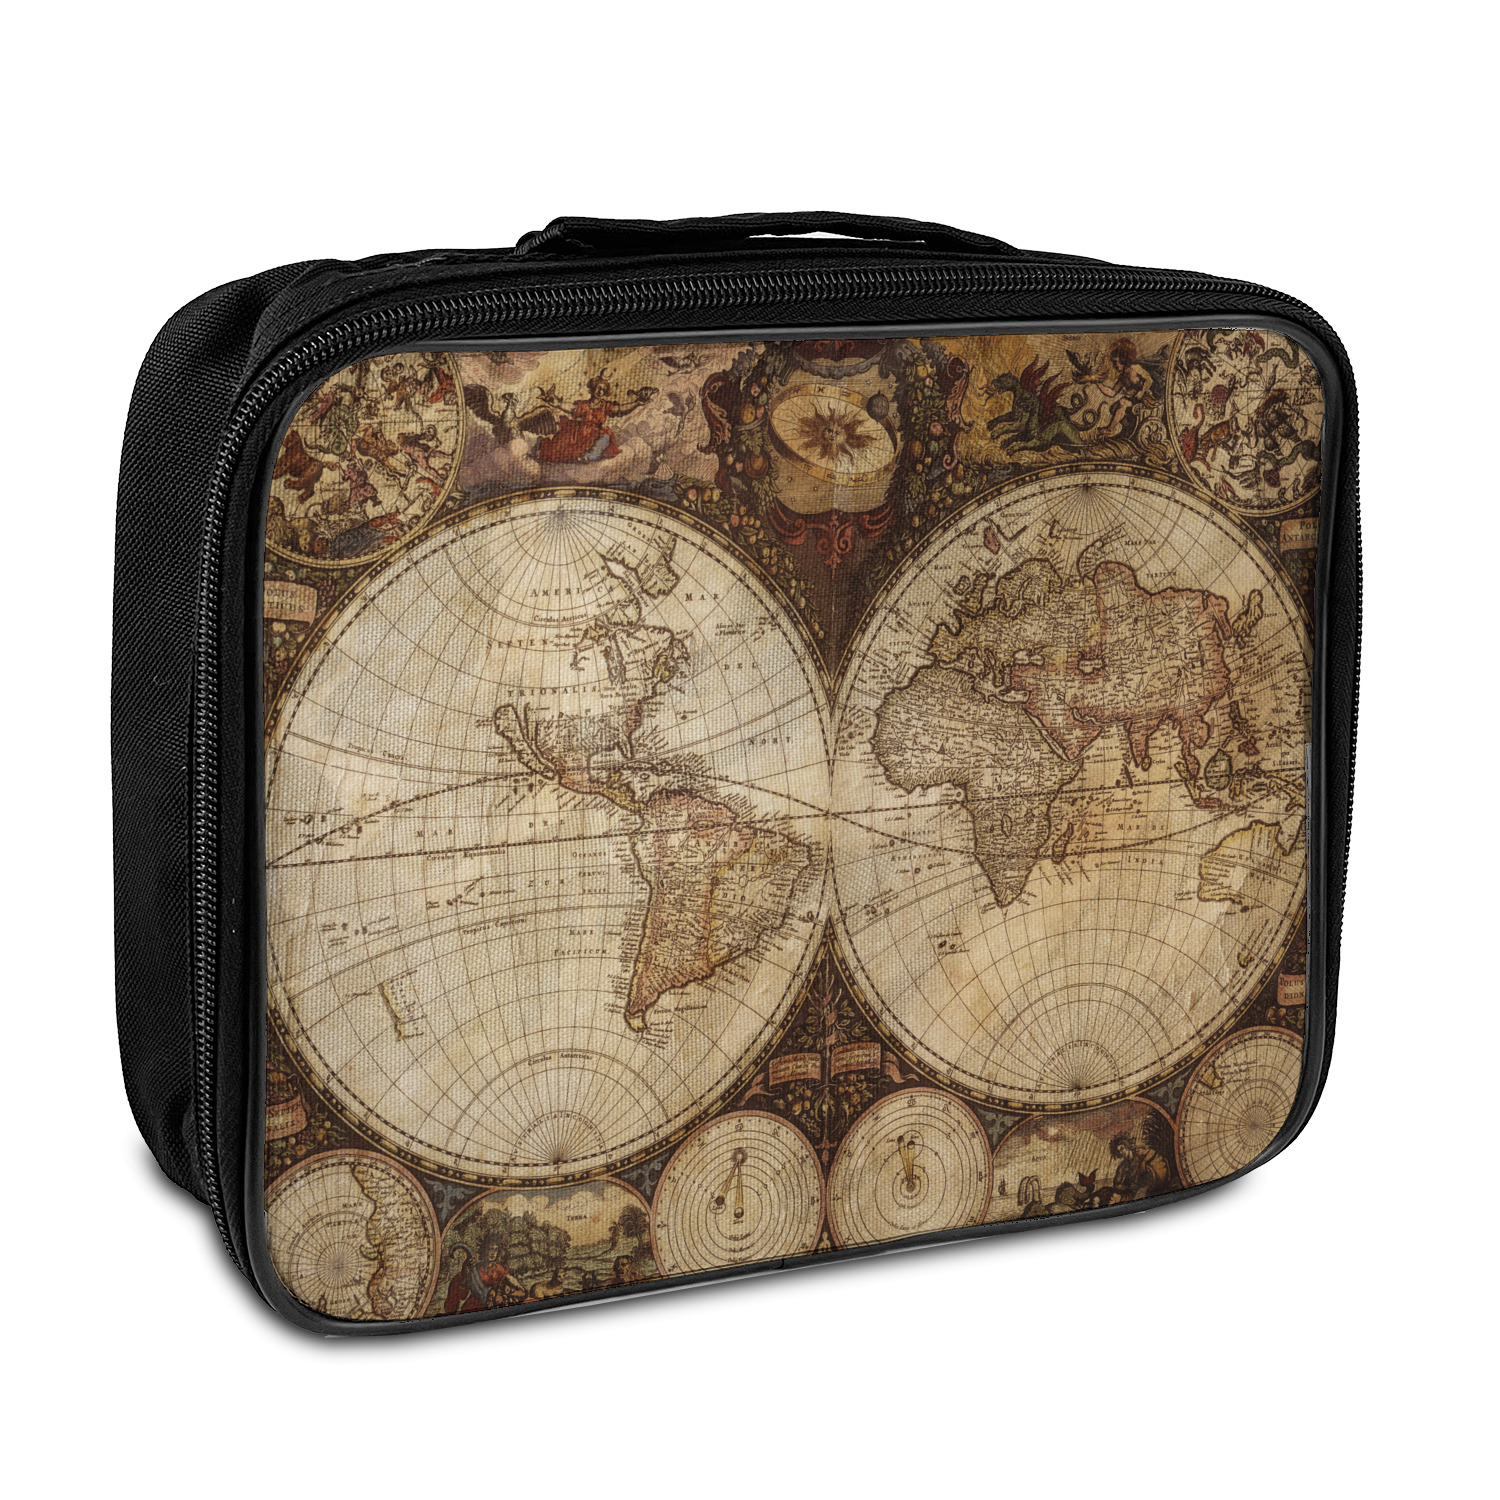 Vintage World Map Insulated Lunch Bag on wwii map bag, travel bag, german map bag, korean map bag, military map bag, poster bag, russian map bag, italian map bag, vintage compass, world map bag, leather map bag,